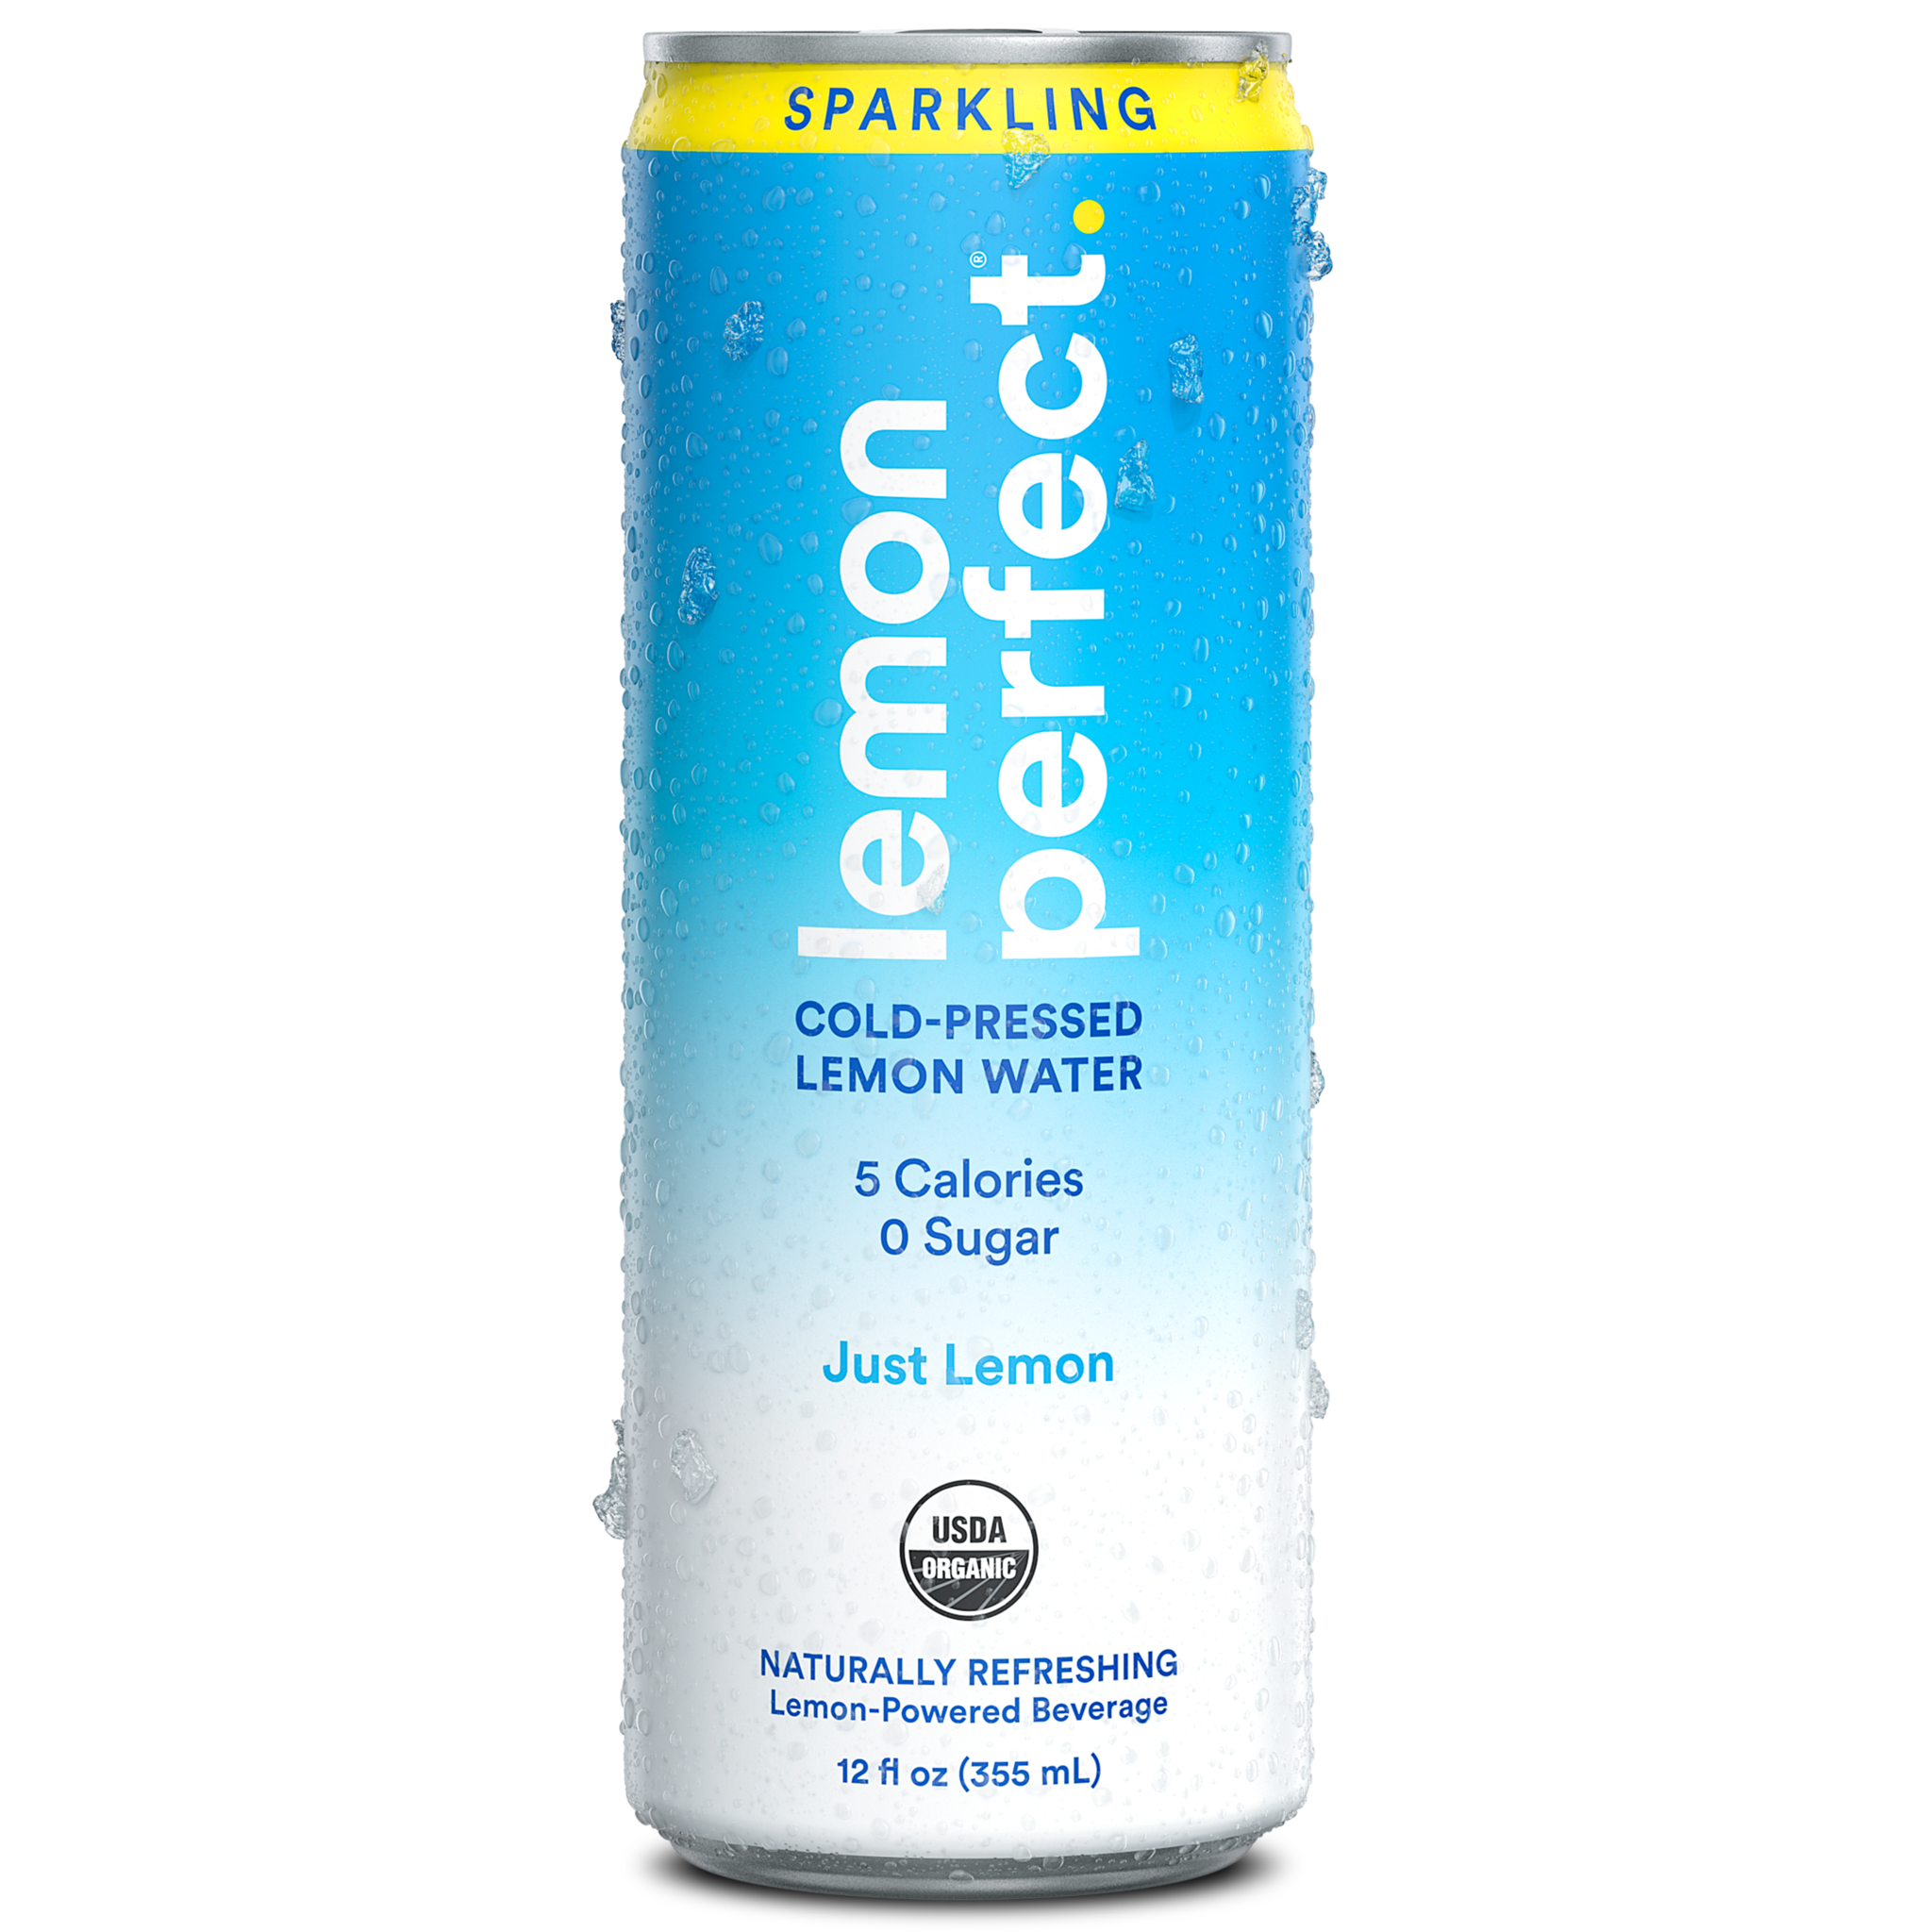 Sparkling Just Lemon - The Lemon Perfect - Keto Certified by the Paleo Foundation